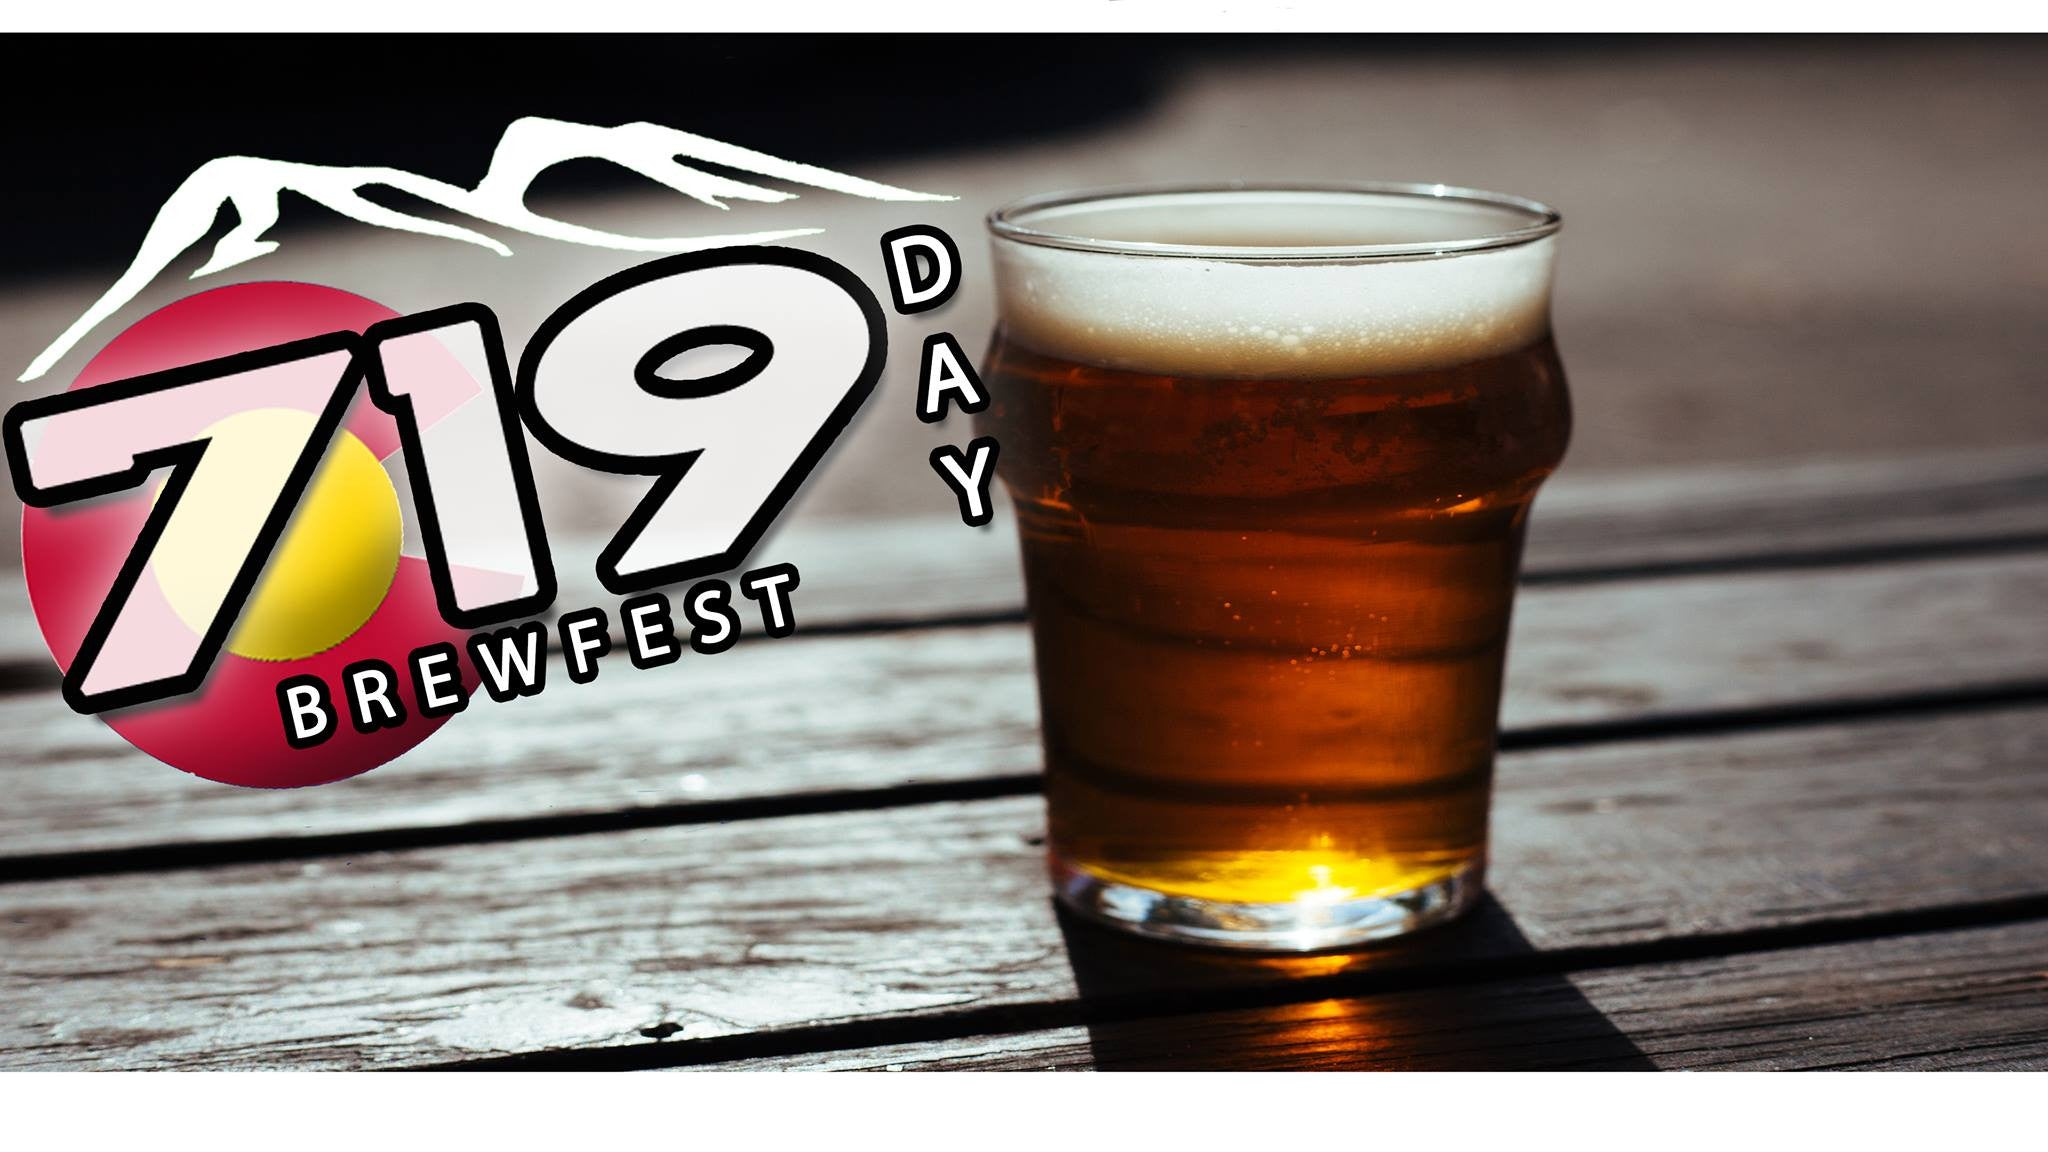 719 Day Brewfest and Beard Contest!